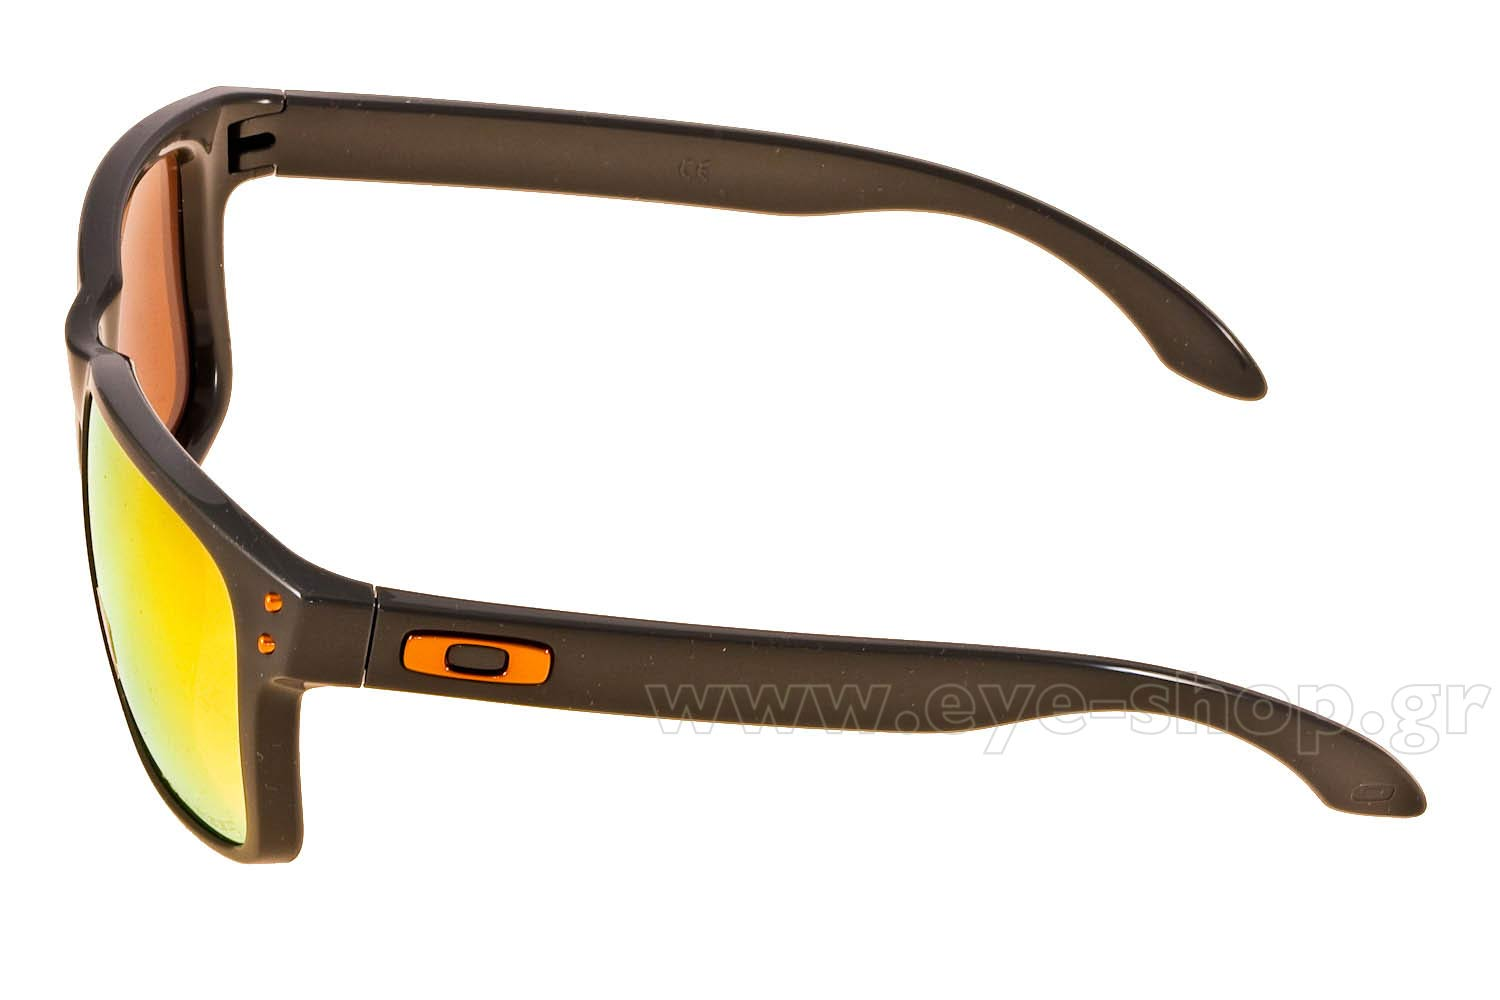 5ddd526faf Oakley Holbrook White Fire Iridium. Oakley Sunglasses Jupiter Squared  Polished Black ...